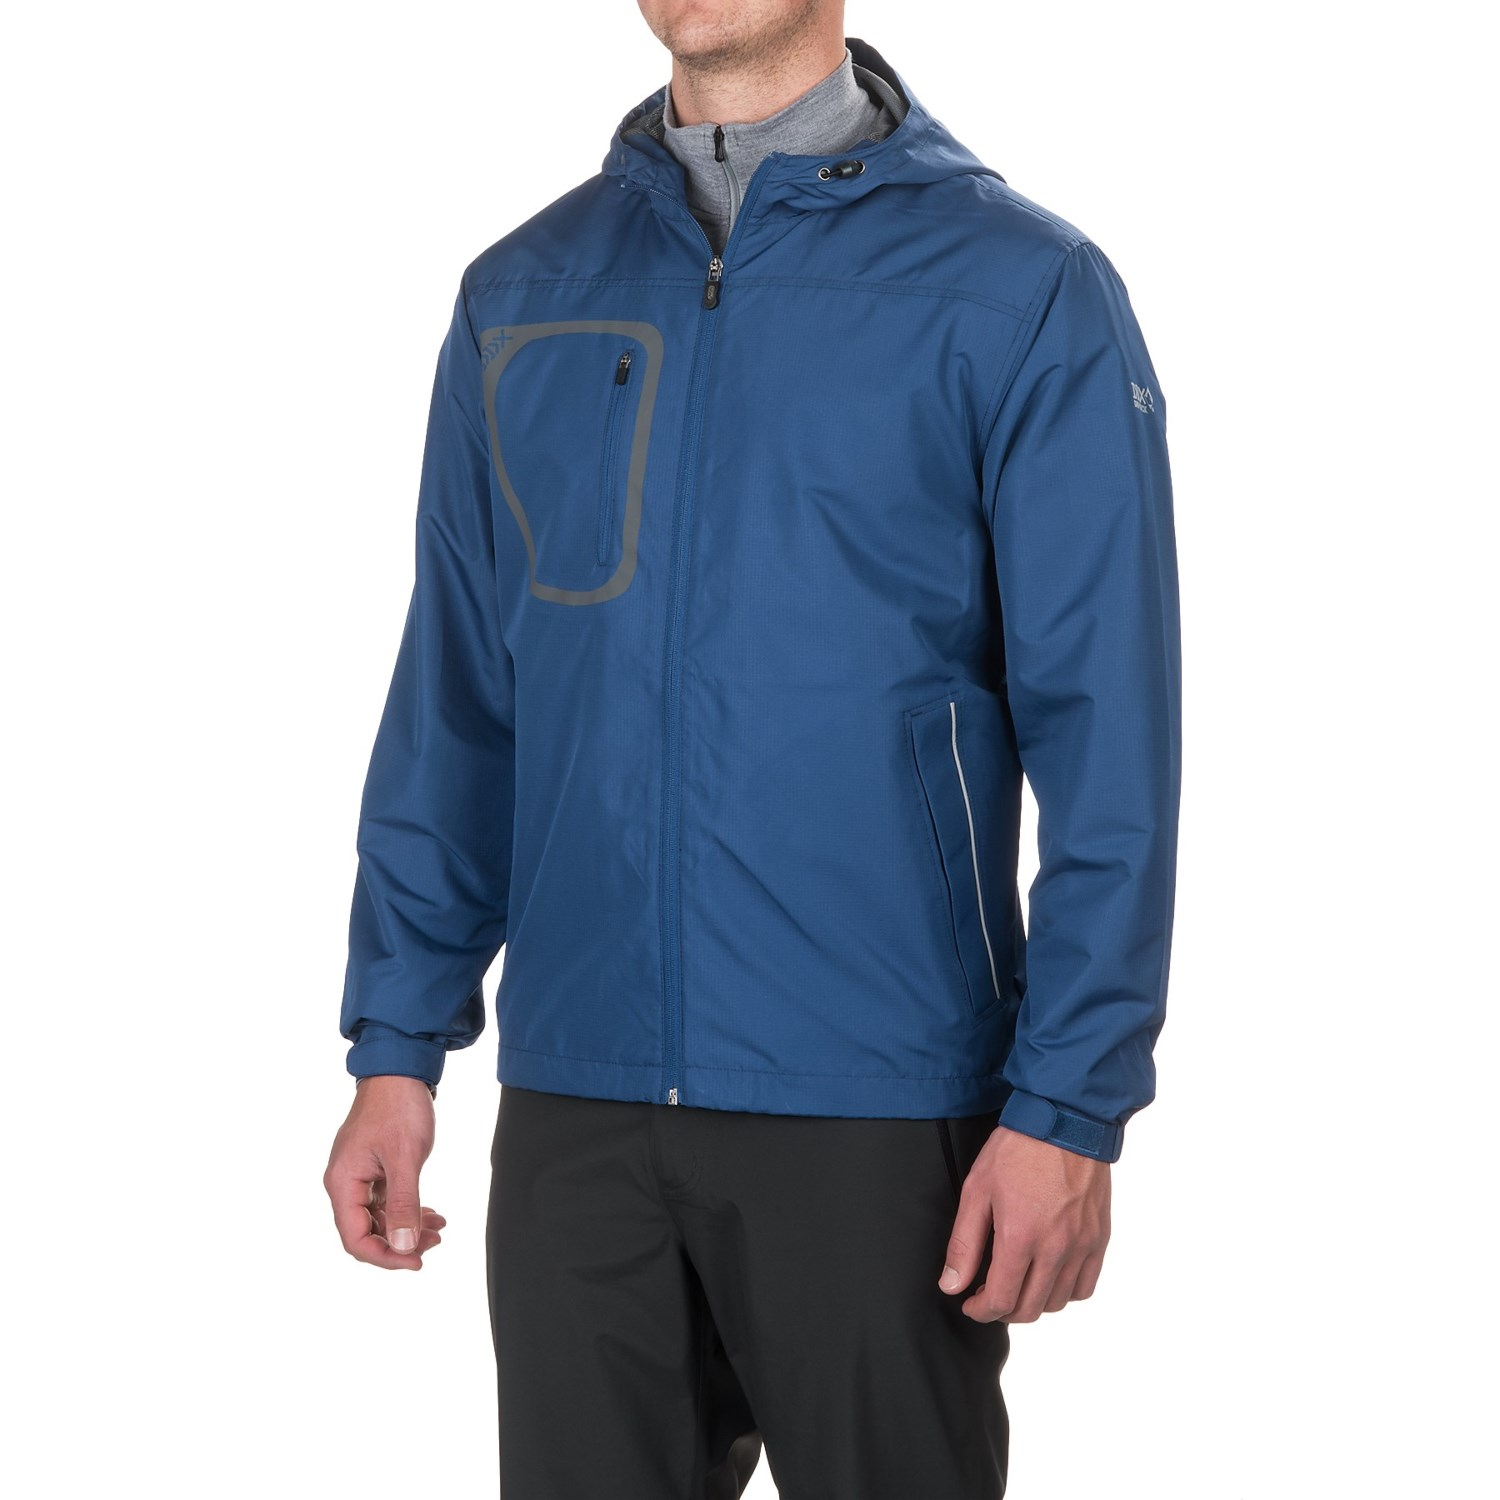 Dri-Duck Dri-Pack Rain Jacket (For Men) - Save 57%